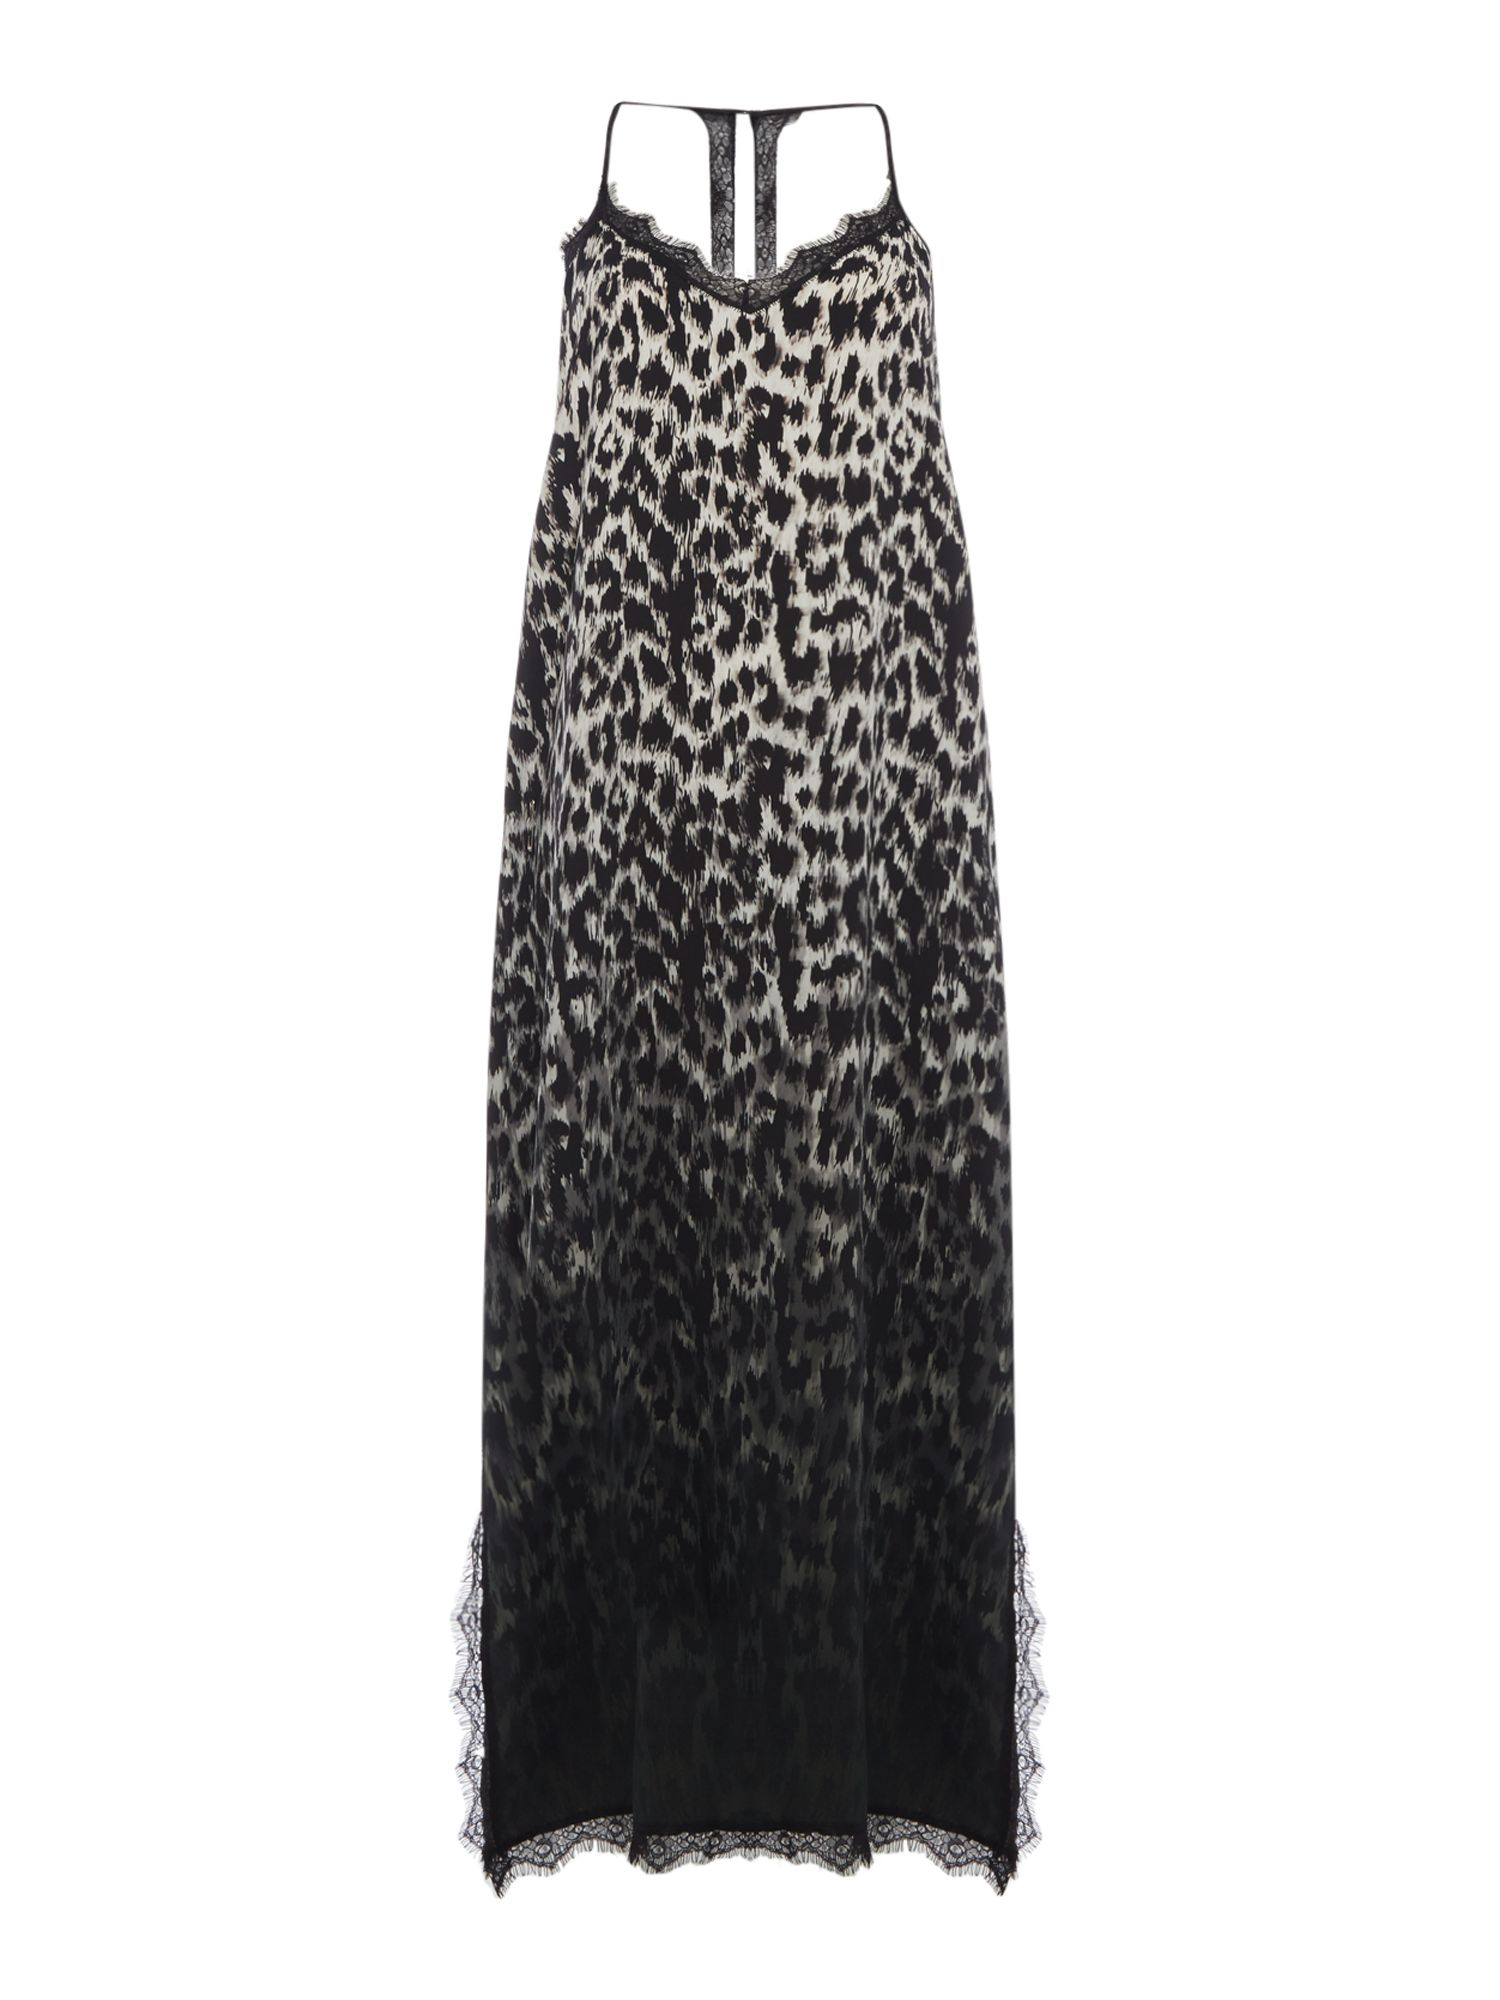 Label Lab Leopard Print Slip Dress, Multi-Coloured